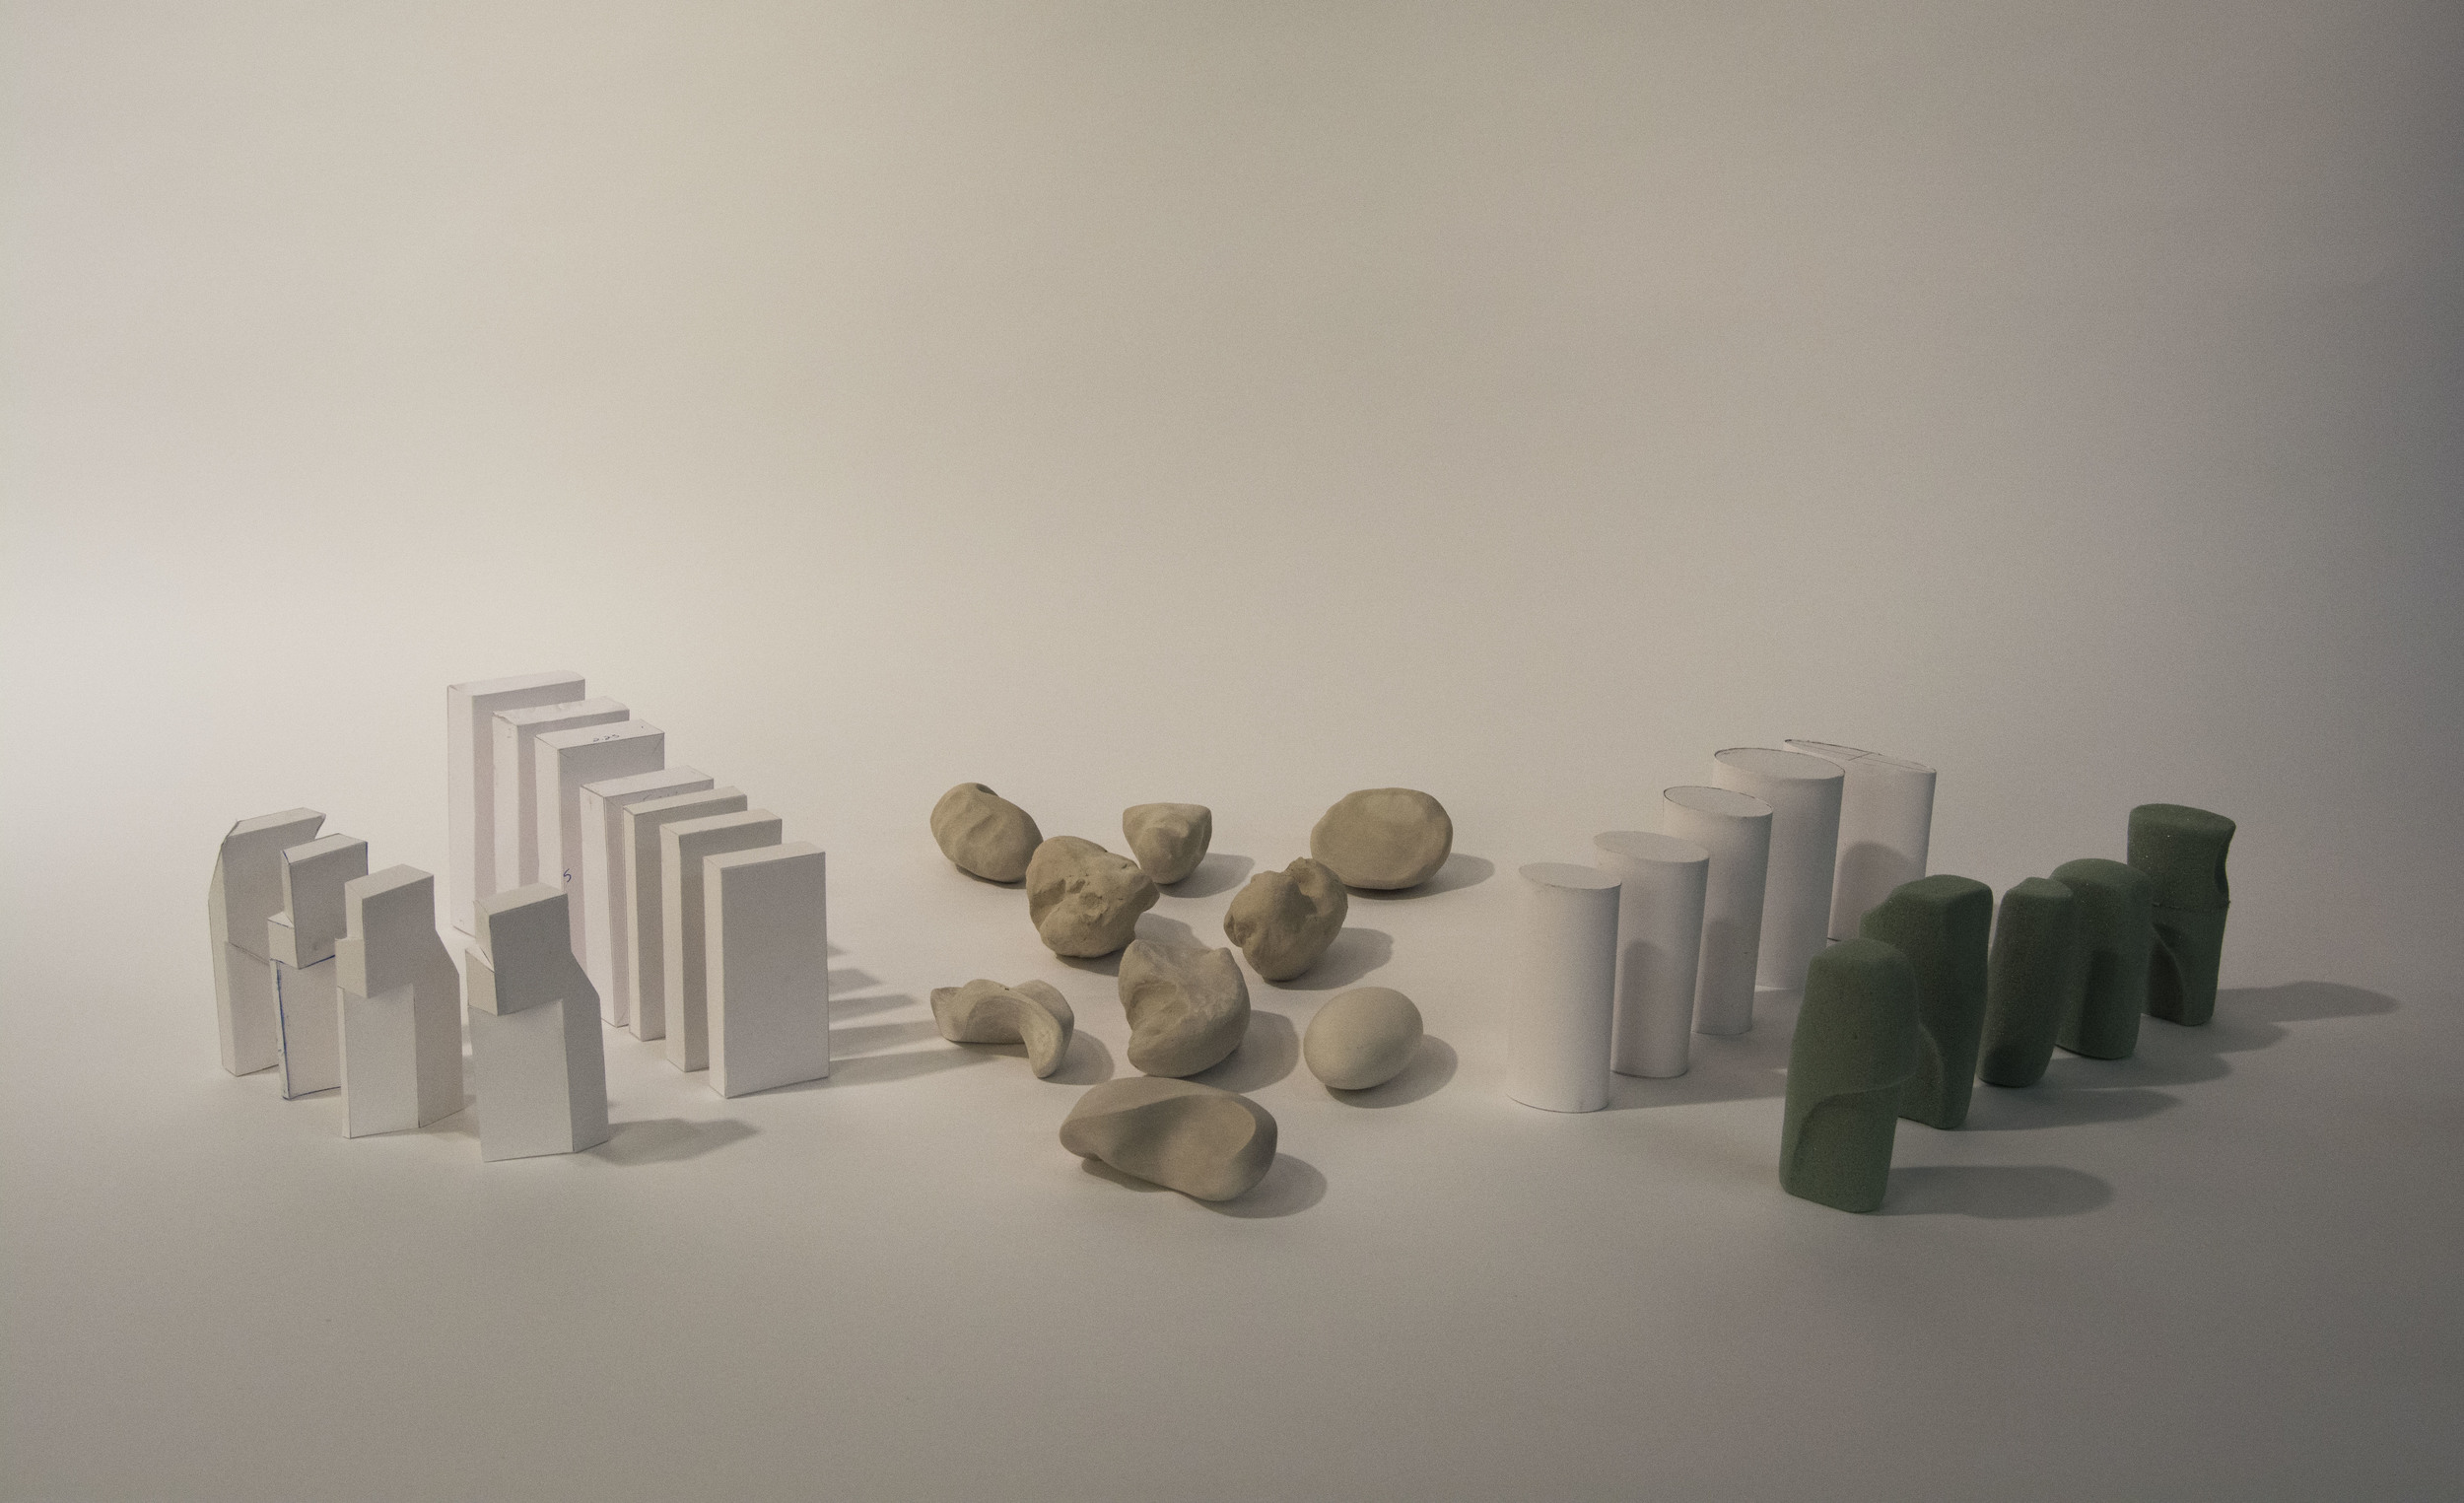 All of my models, explorative and final